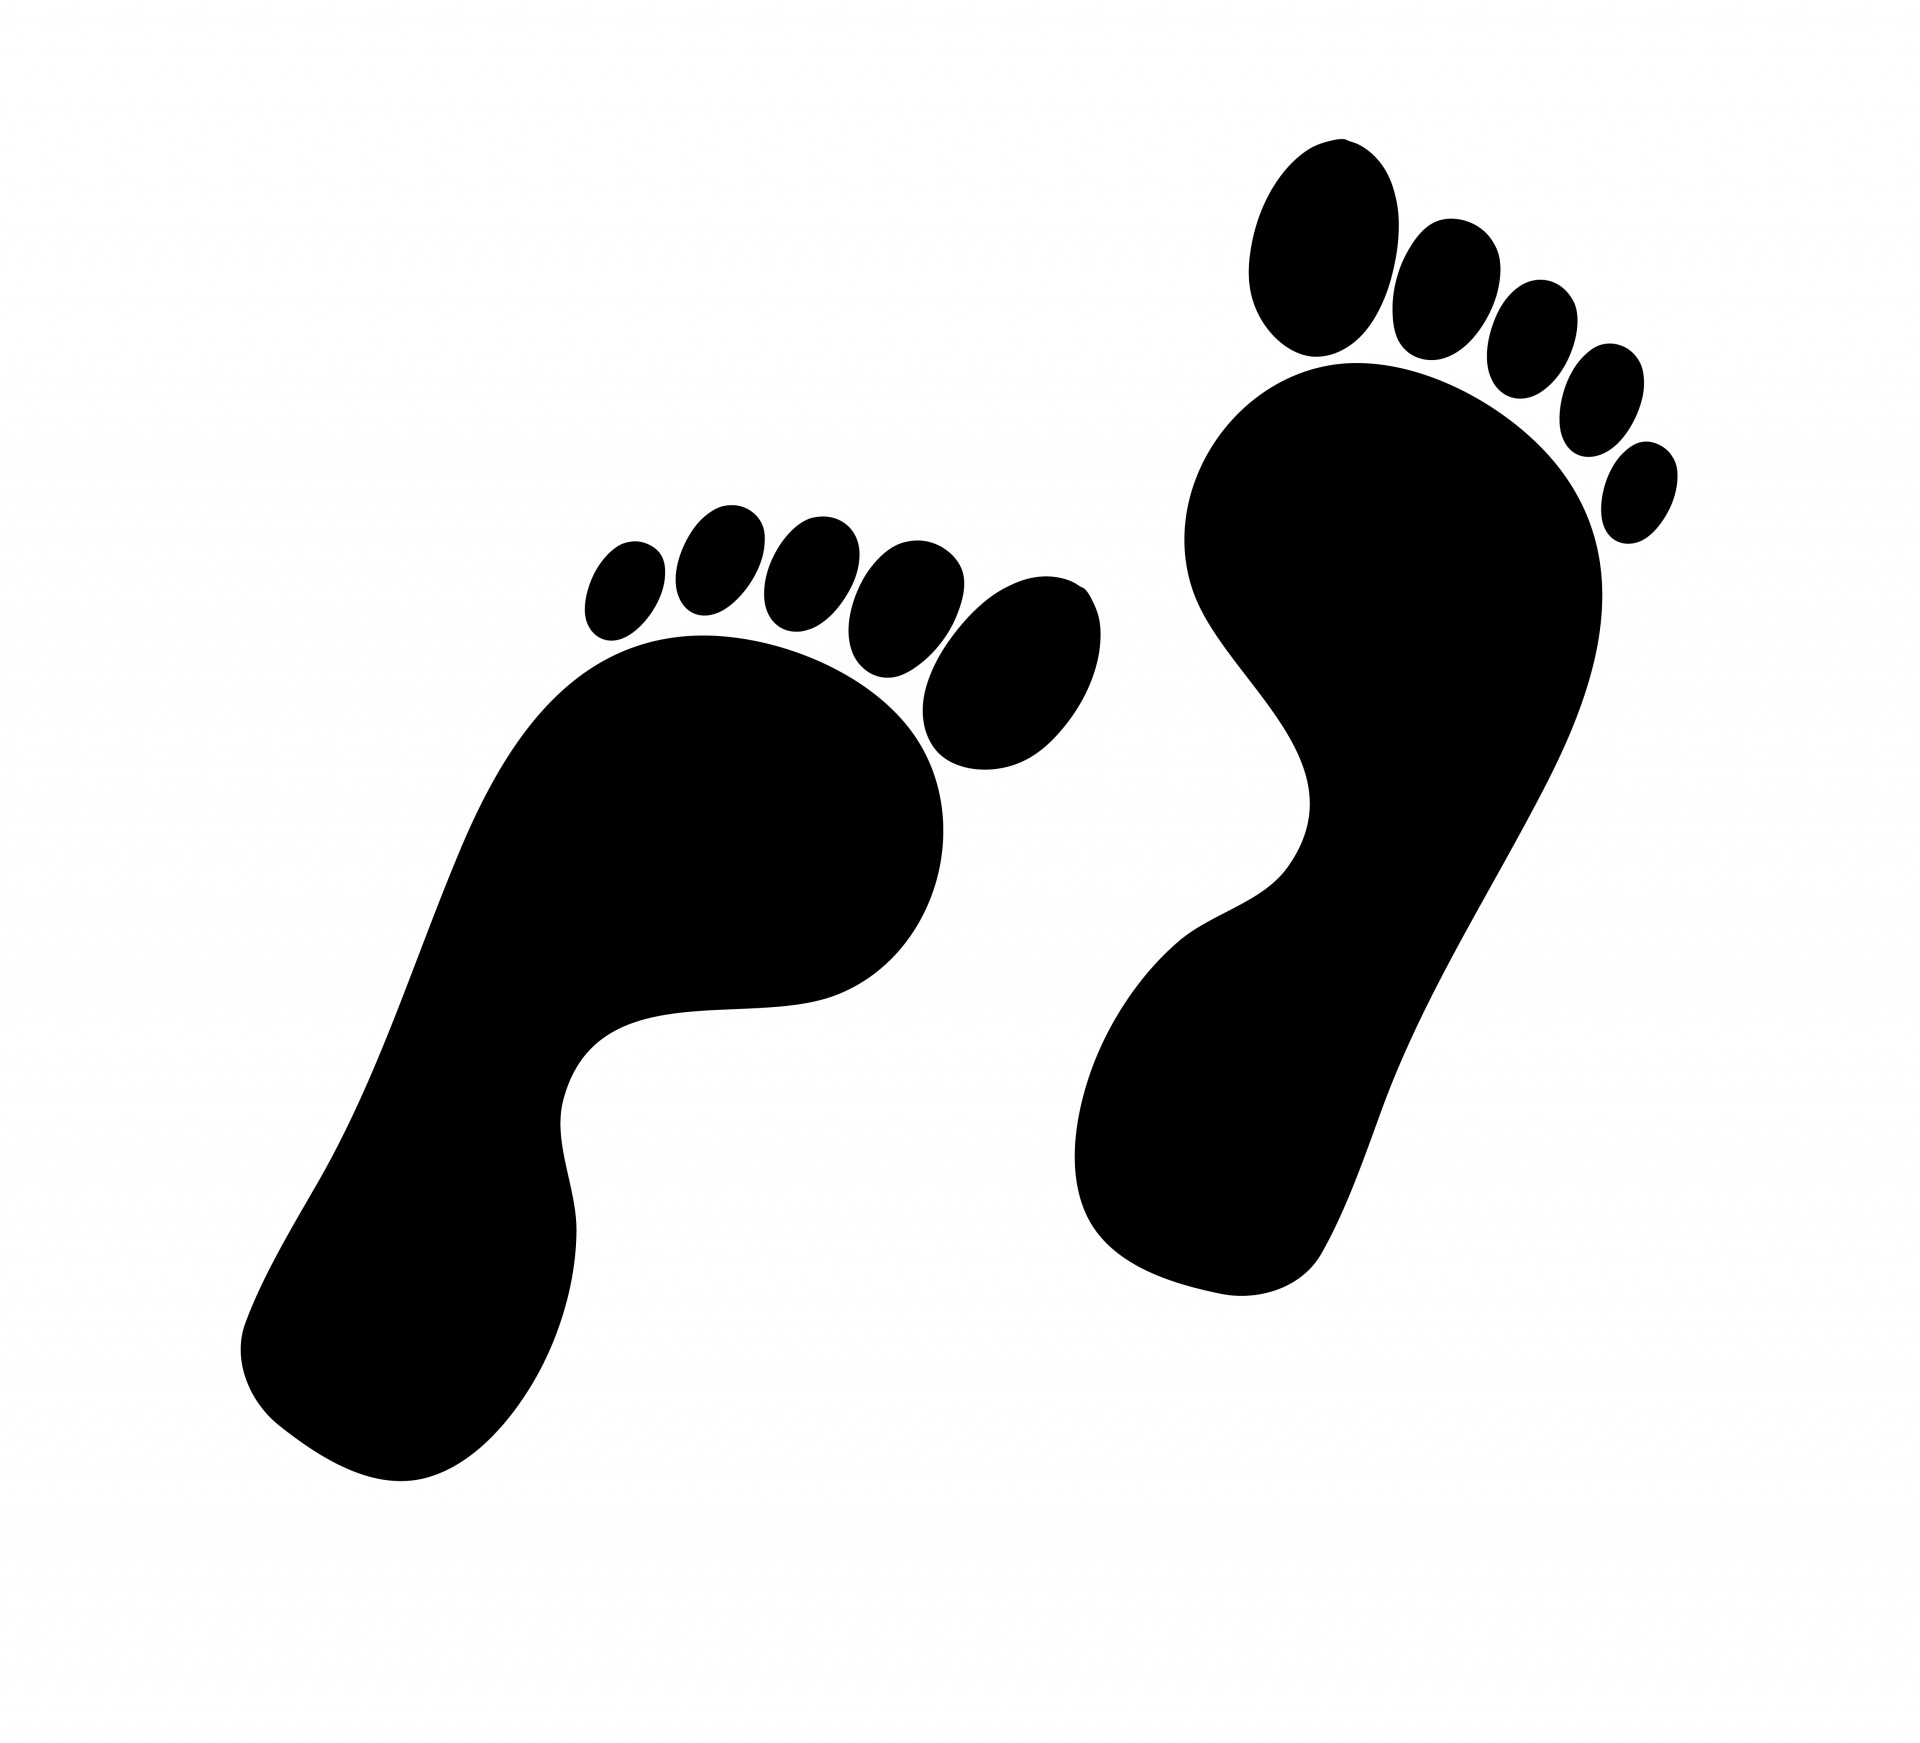 Silhouette free stock photo. Footprints clipart